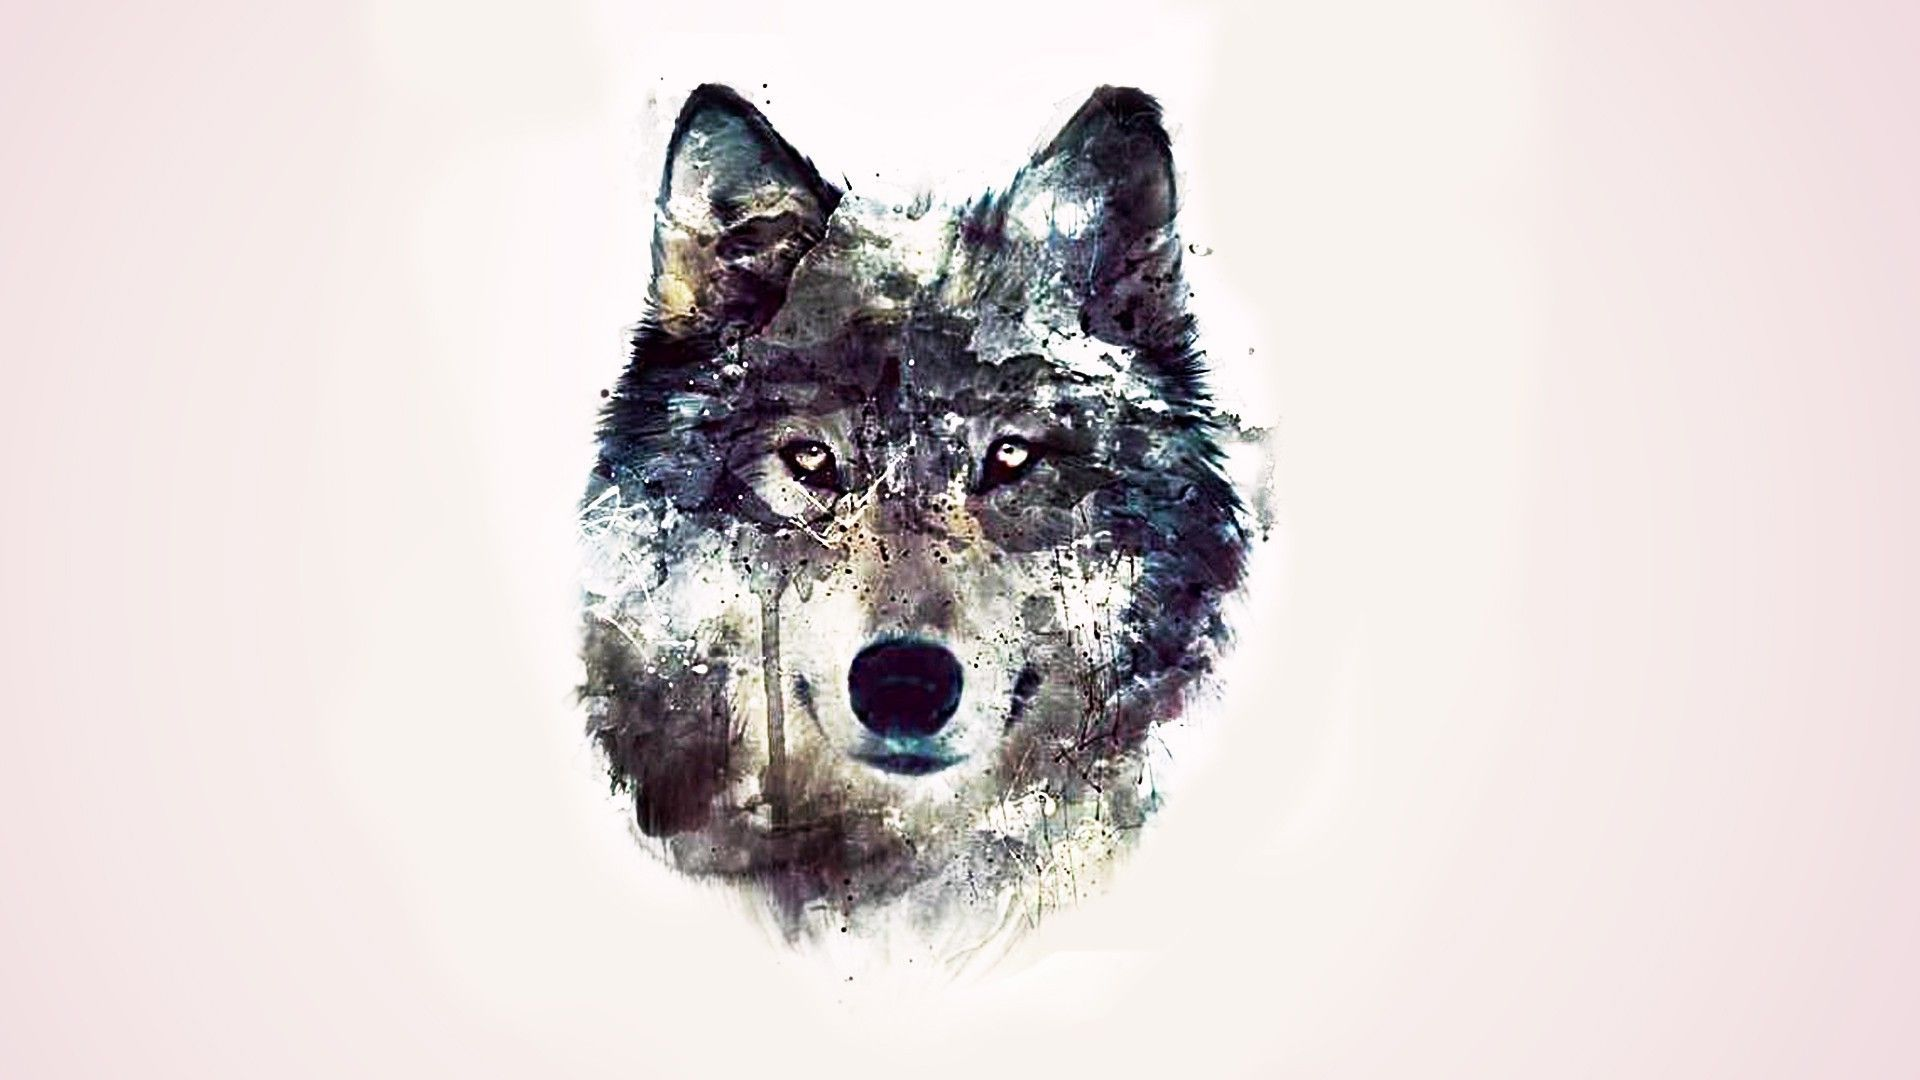 Drawn wallpaper wolf Wide wolf hdwallpapersimage wallpaper hd